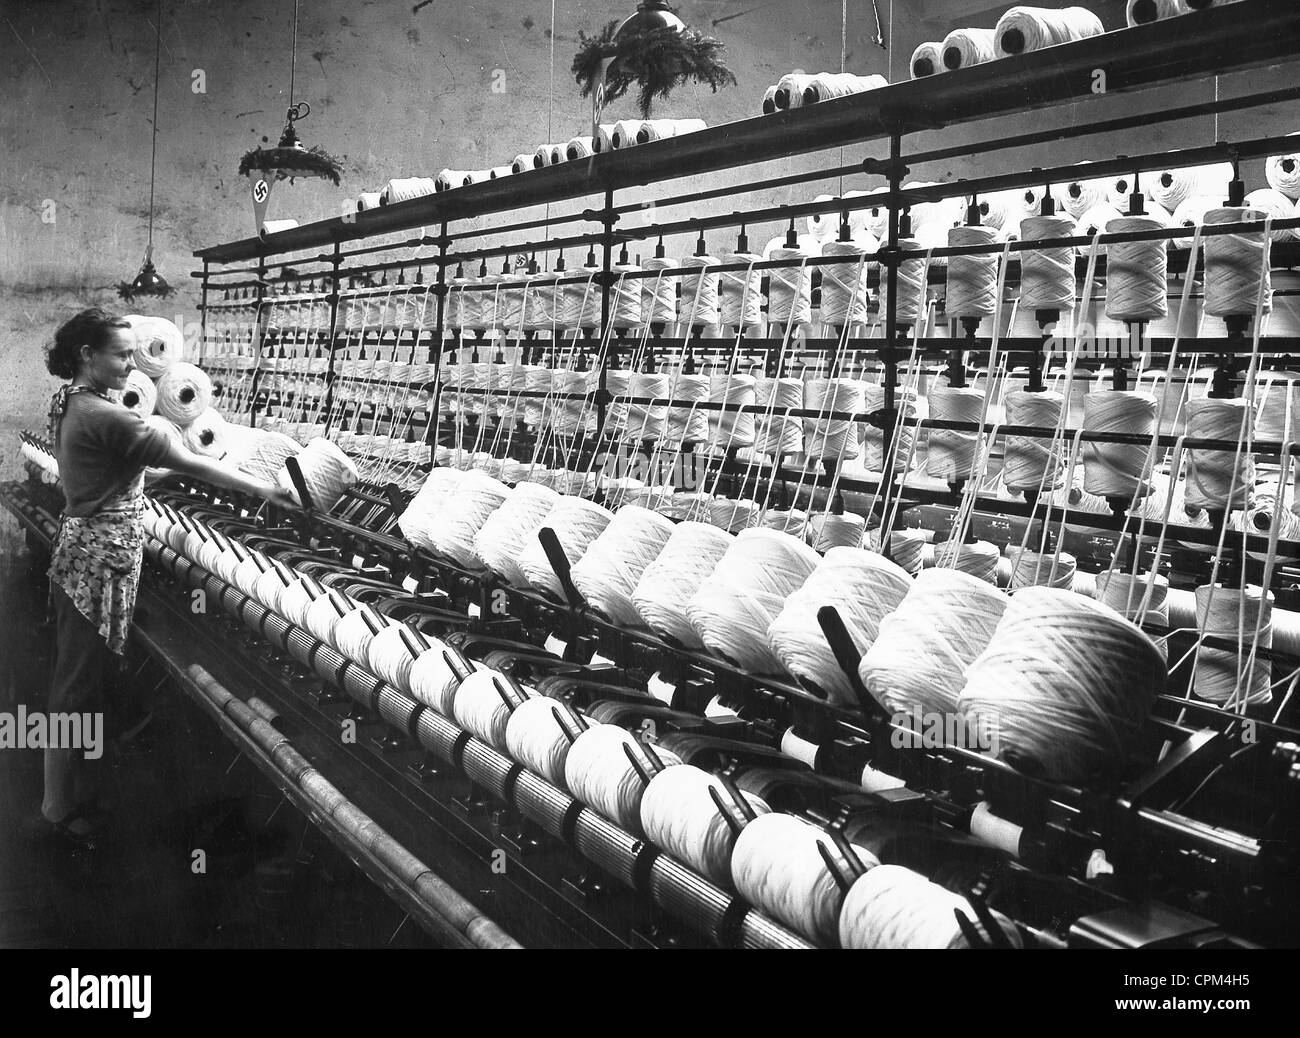 Textile production in Czechoslovakia, 1938 - Stock Image